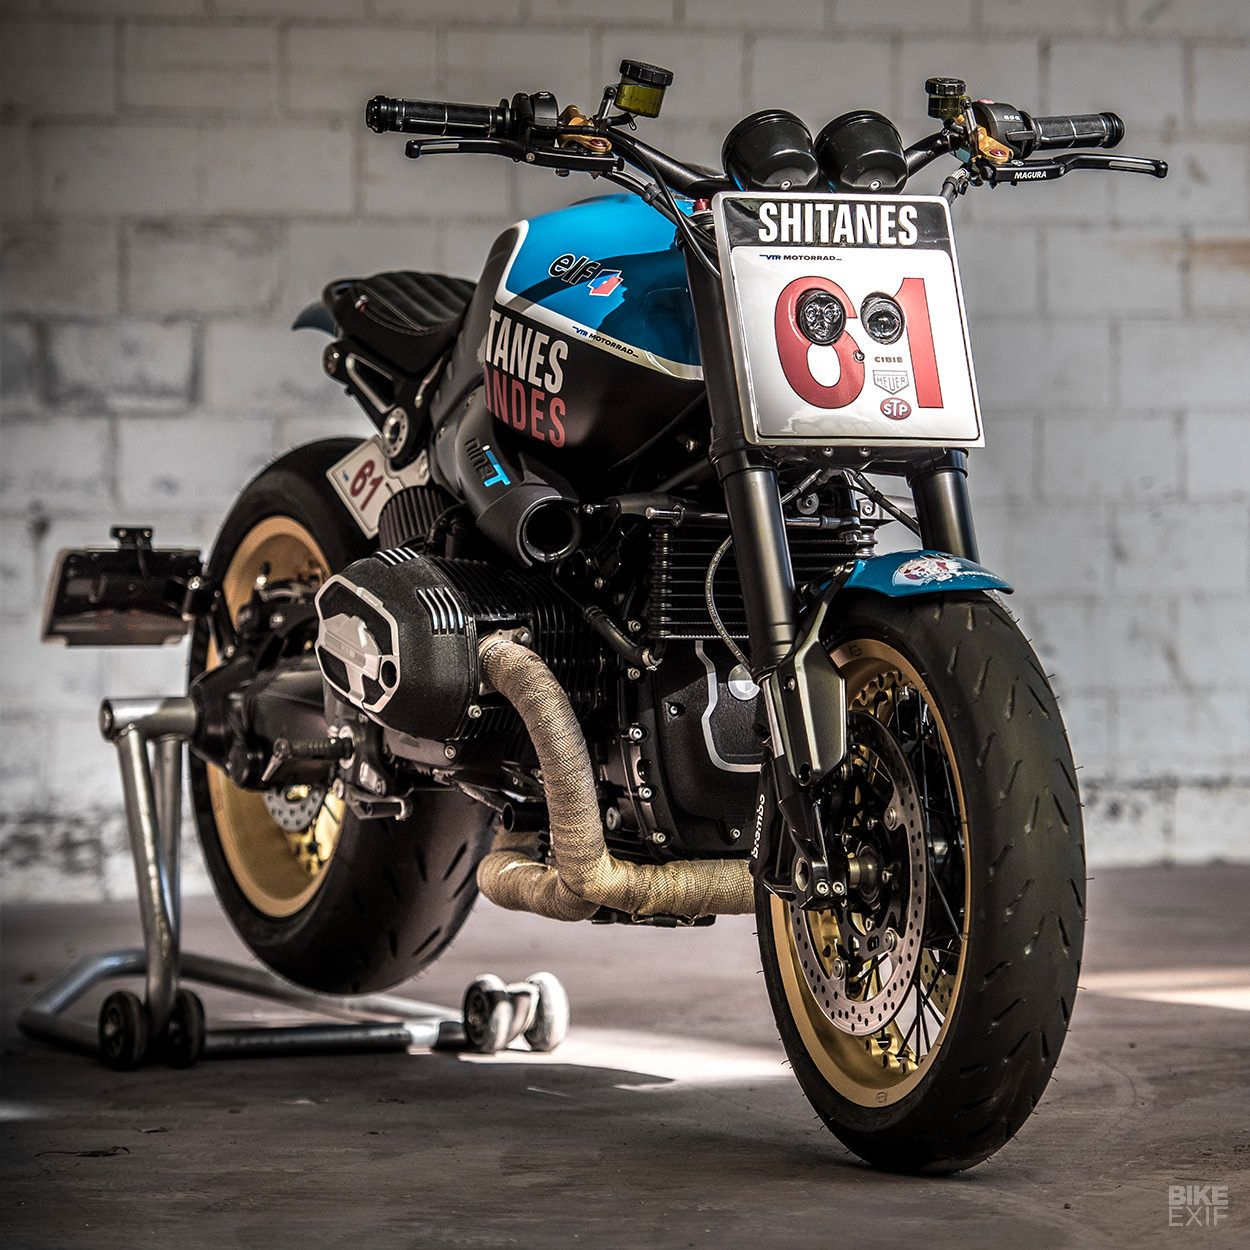 Shitanes 61 Vtr Customs Outrageous R Ninet Bike Exif Bmw Motorcycles Bmw